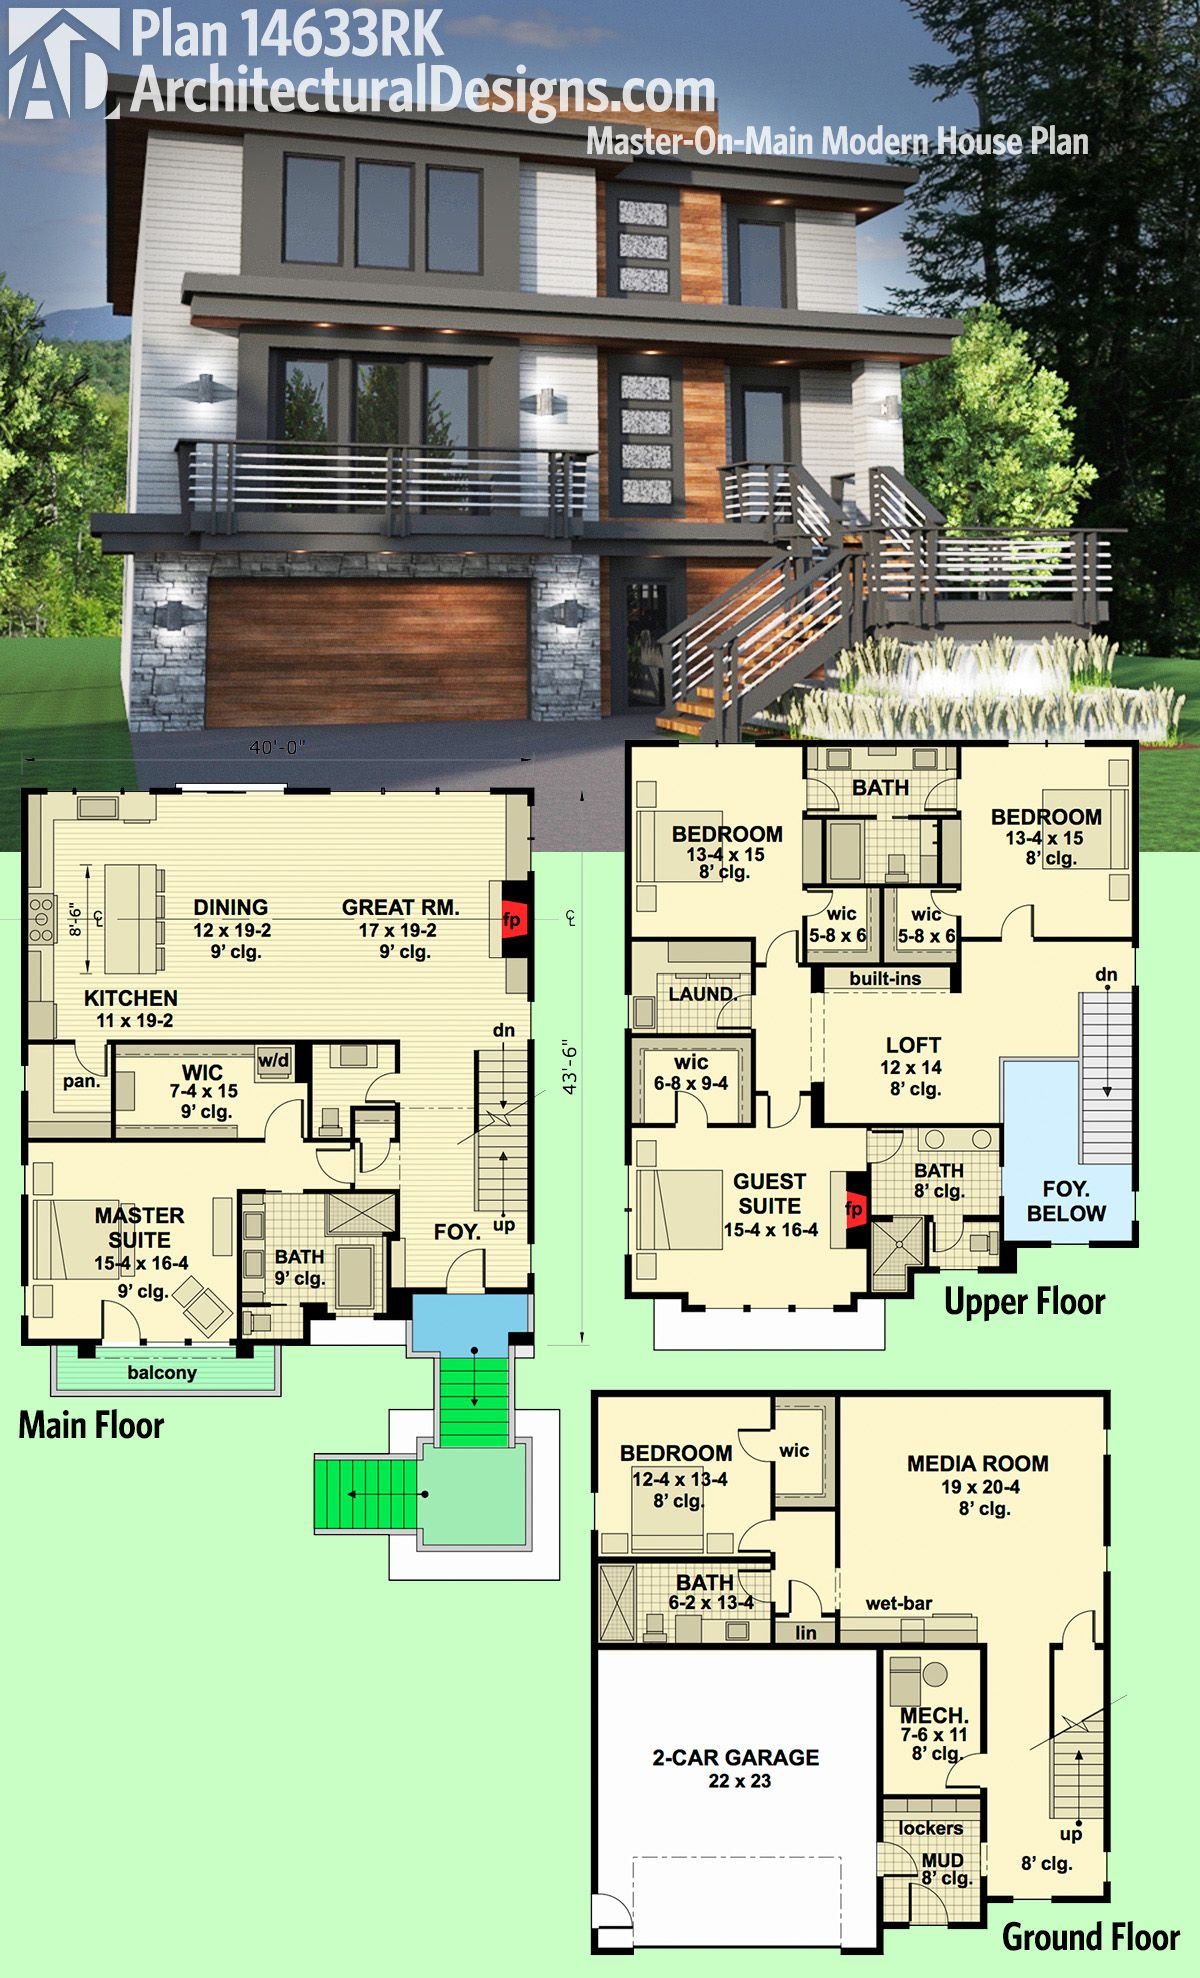 Plan 14633rk master on main modern house plan modern for 2nd floor house design in philippines